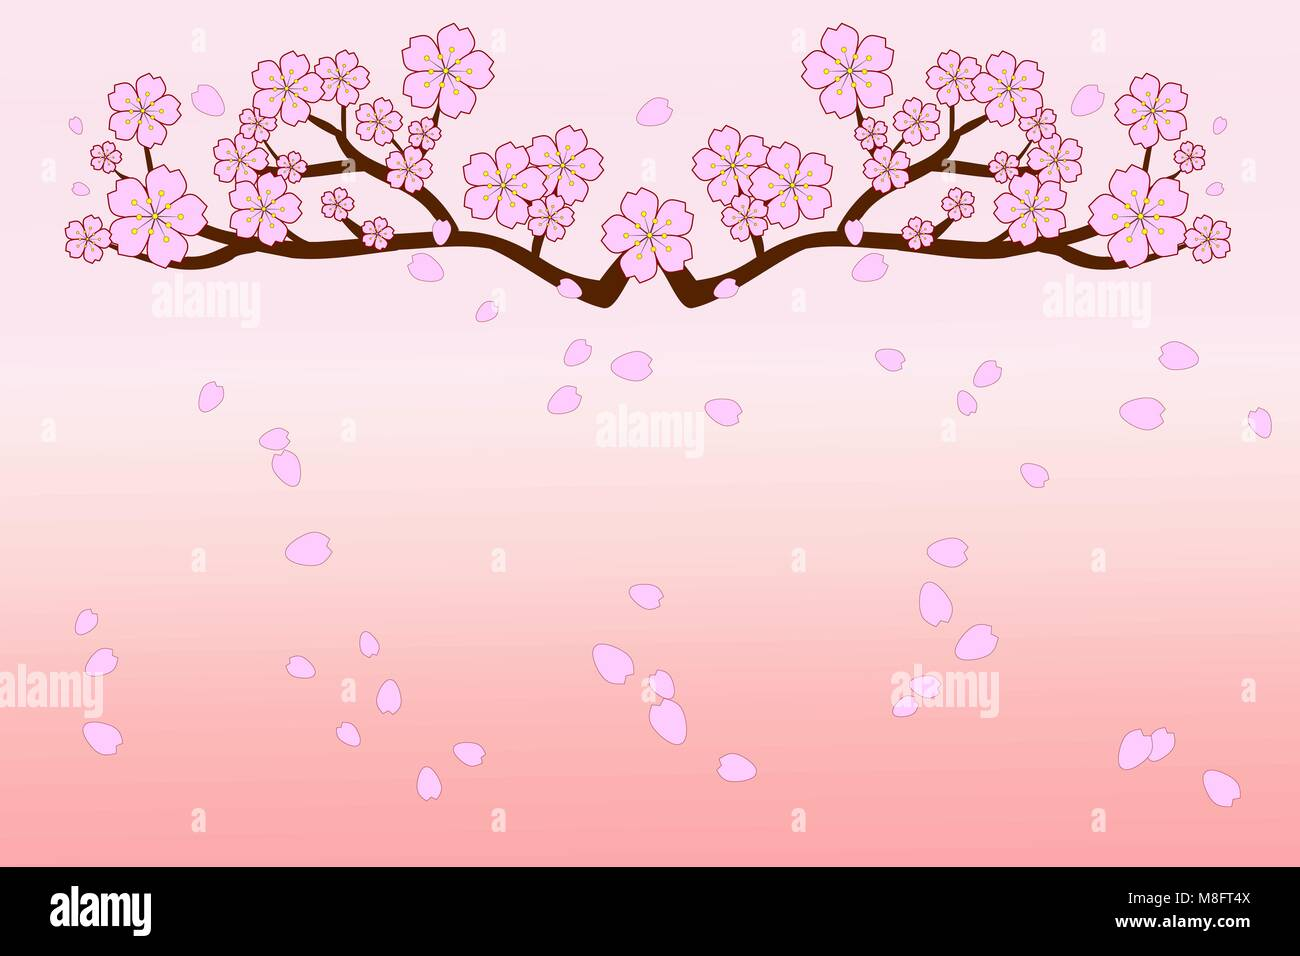 Sakura Falling Live Wallpaper Downloads Full Bloom Cherry Blossoms And Blowing Flying Petals On